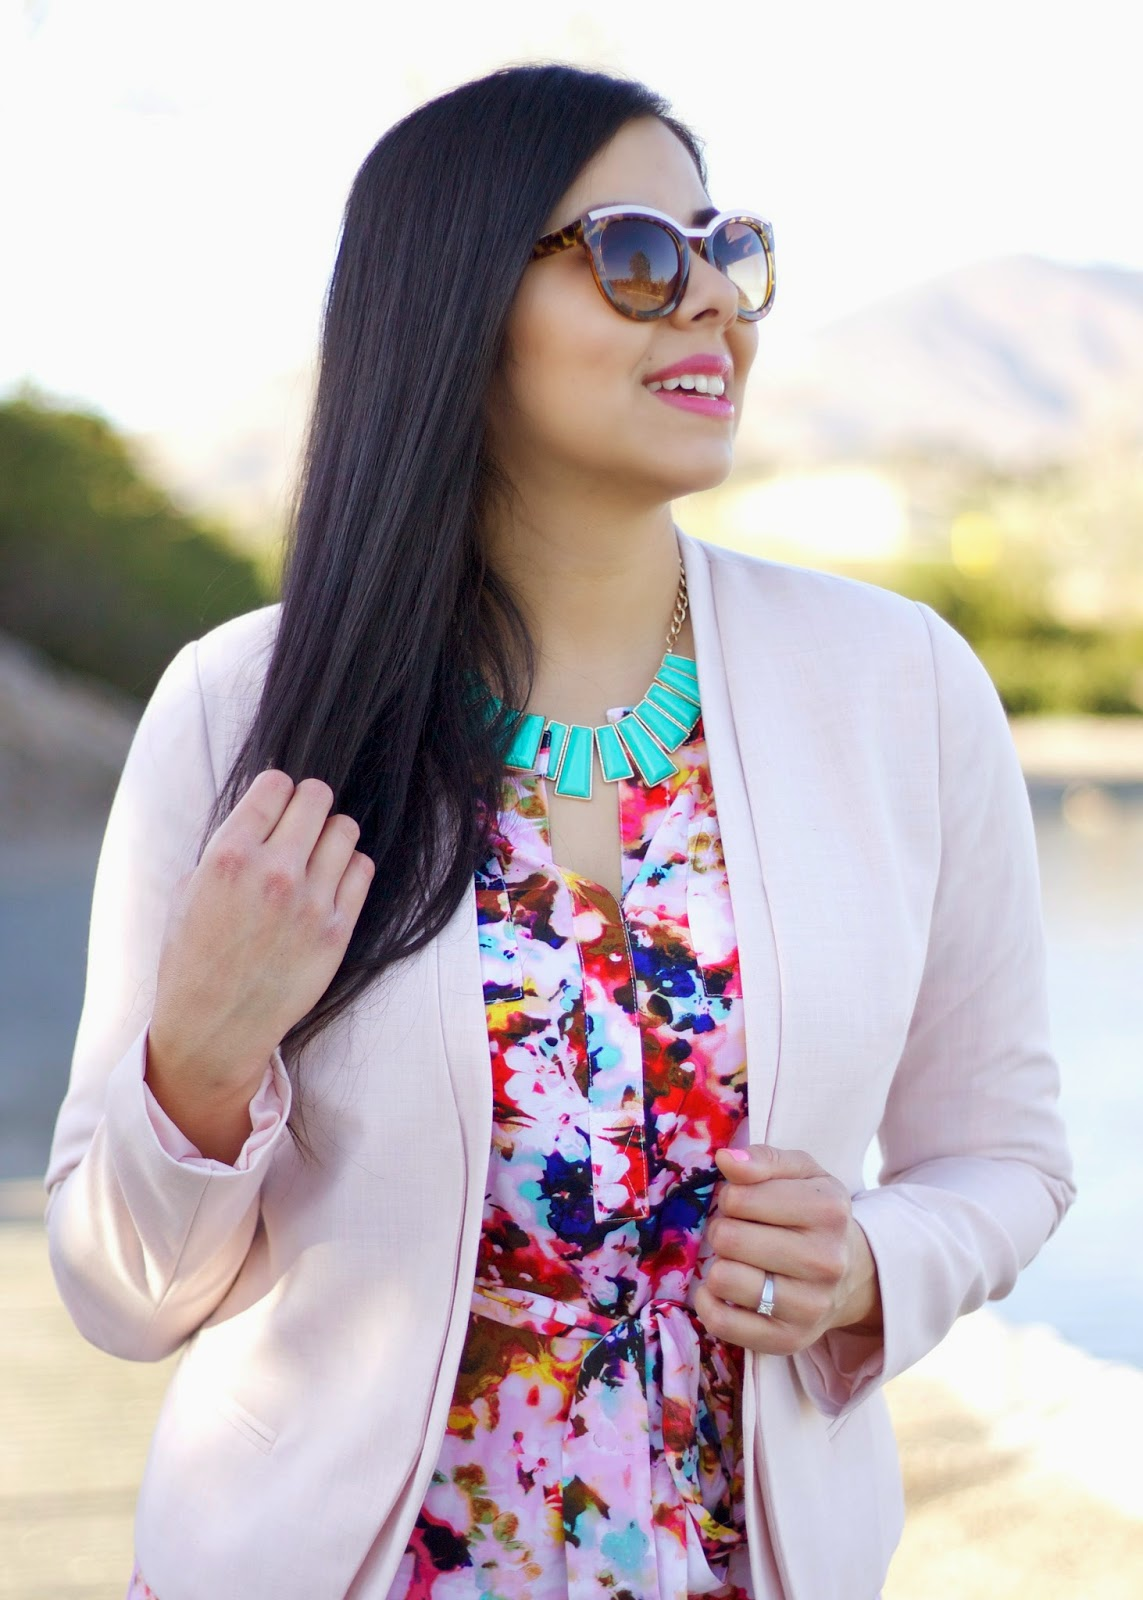 JCP Style, pink florals, teal necklace, forever21 teal necklace, f21 mint necklace, neutrogena lipstick